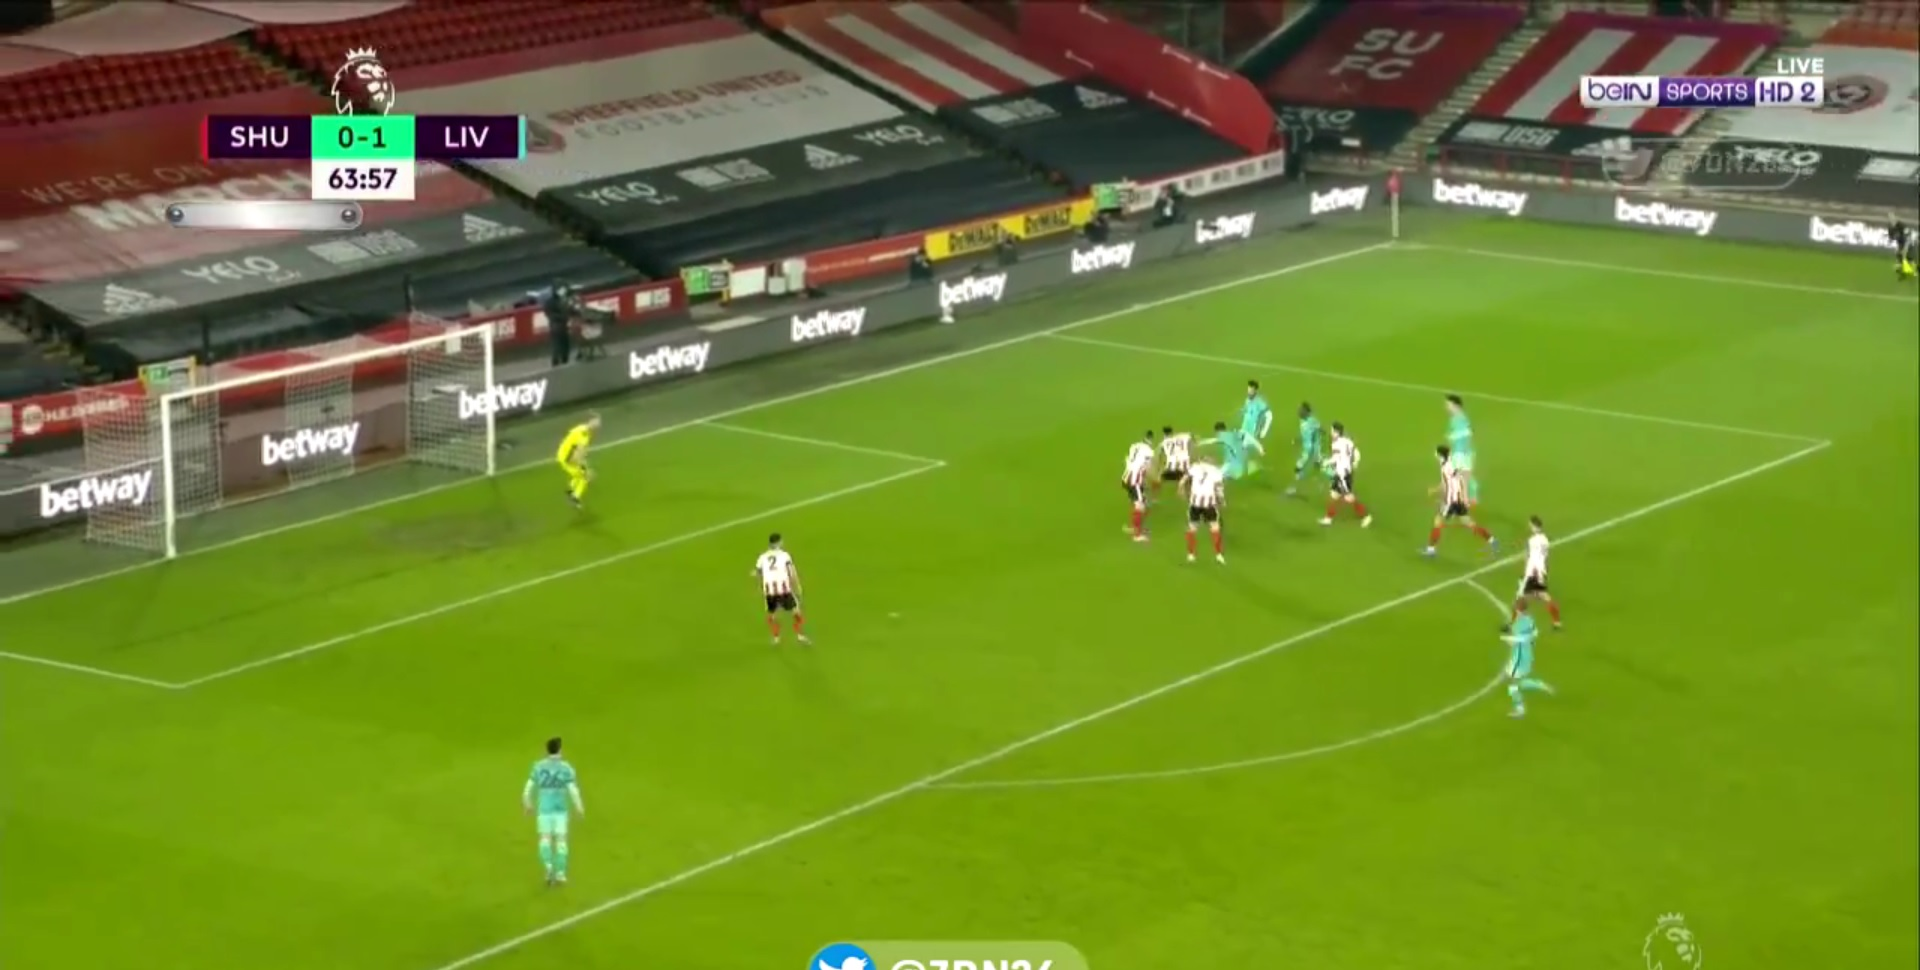 (Video) Firmino bags delightful deflected goal to put Liverpool 2-0 up